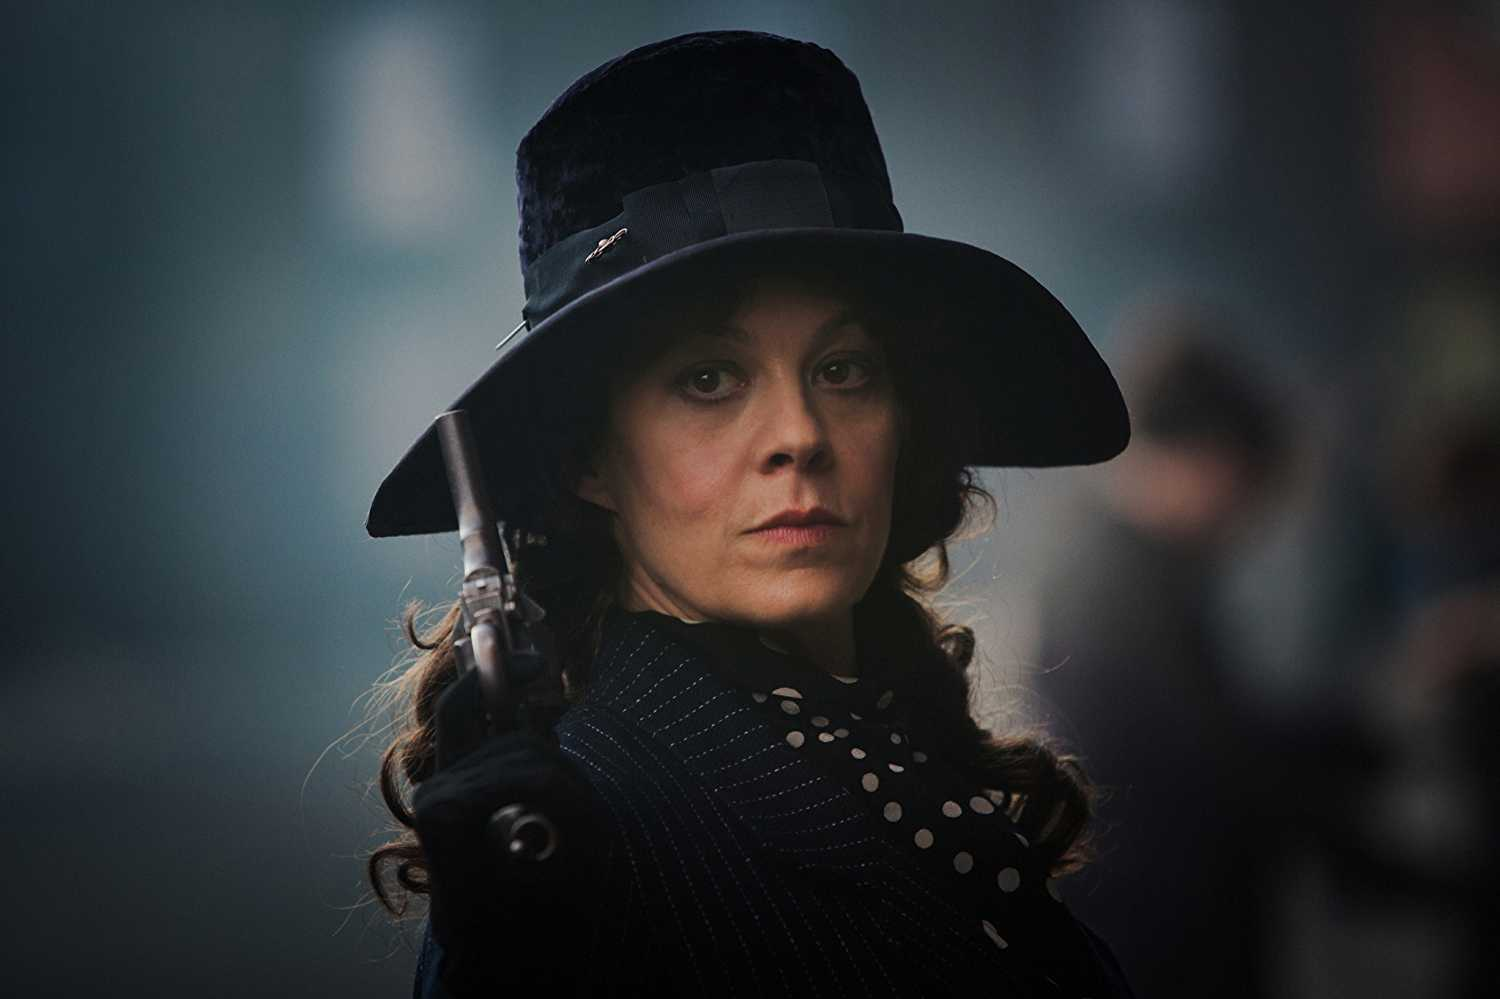 McCrory plays the role of the Shelby matriarch in BBC One's 'Peaky Blinders'. (IMDb)